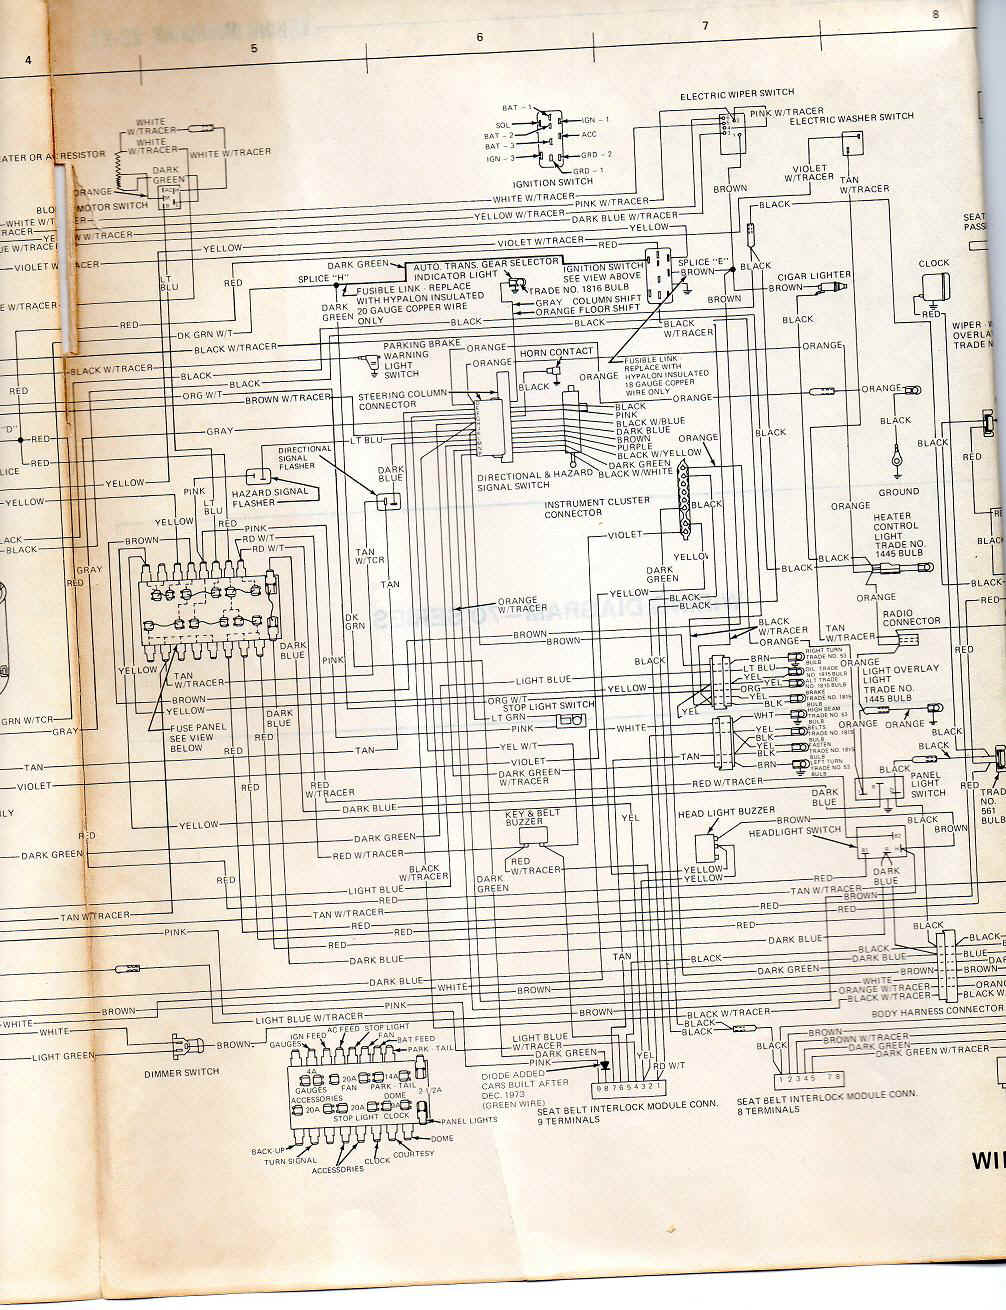 amc electrical troubleshooting rh planethoustonamx com 1970 amc amx wiring diagram MSD Ignition Wiring Diagram